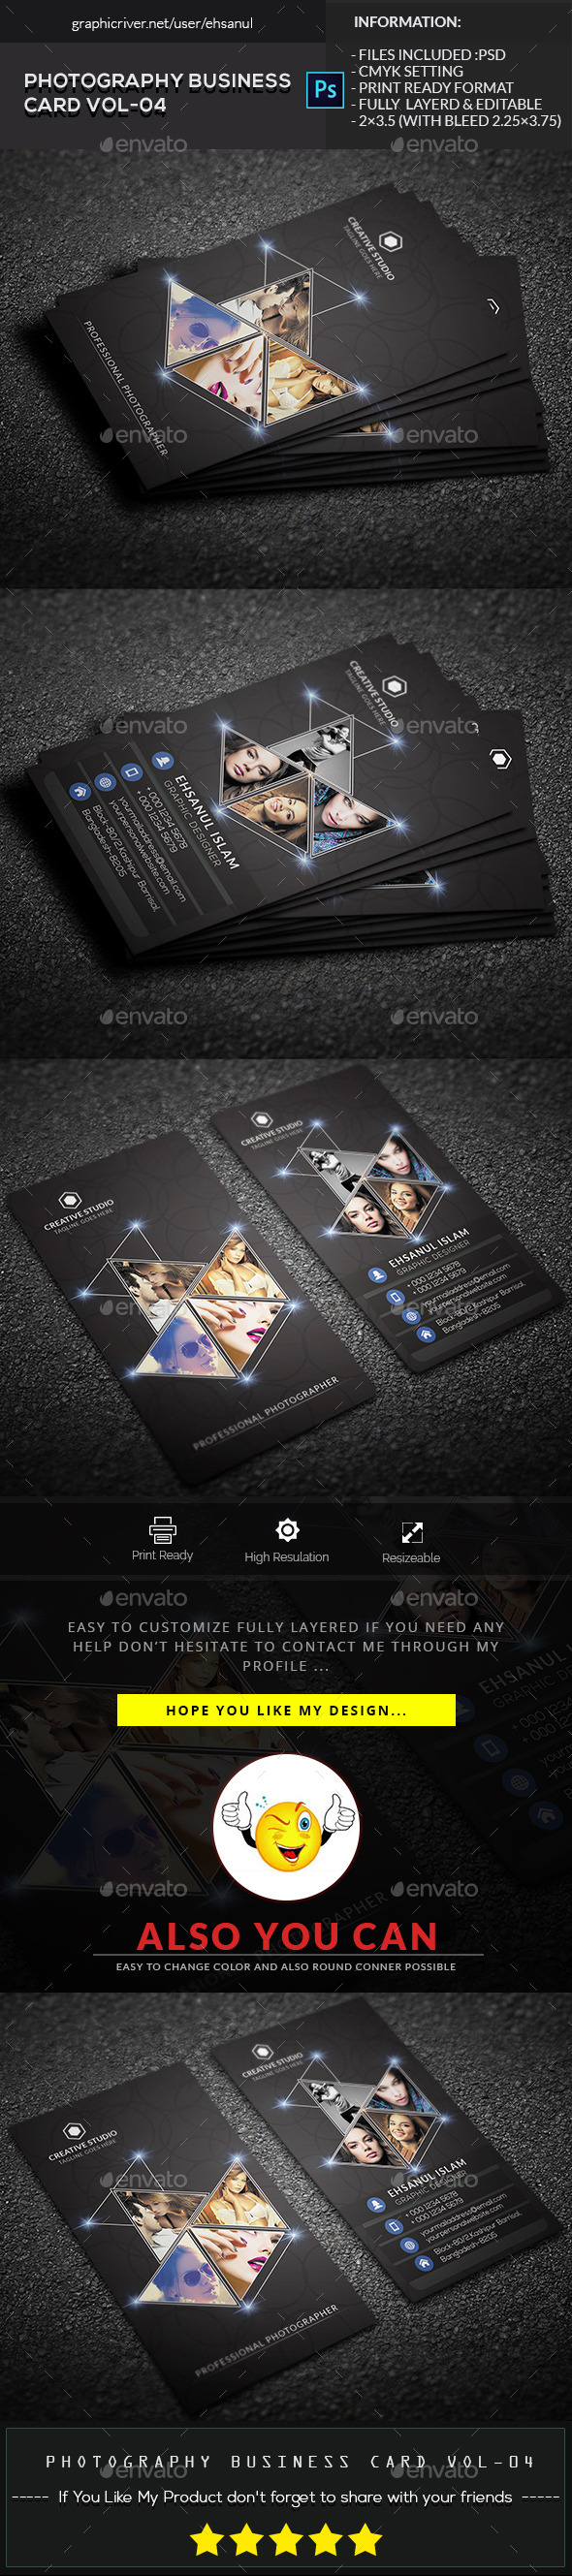 Photography Business Card Vol 04 - Creative Business Cards